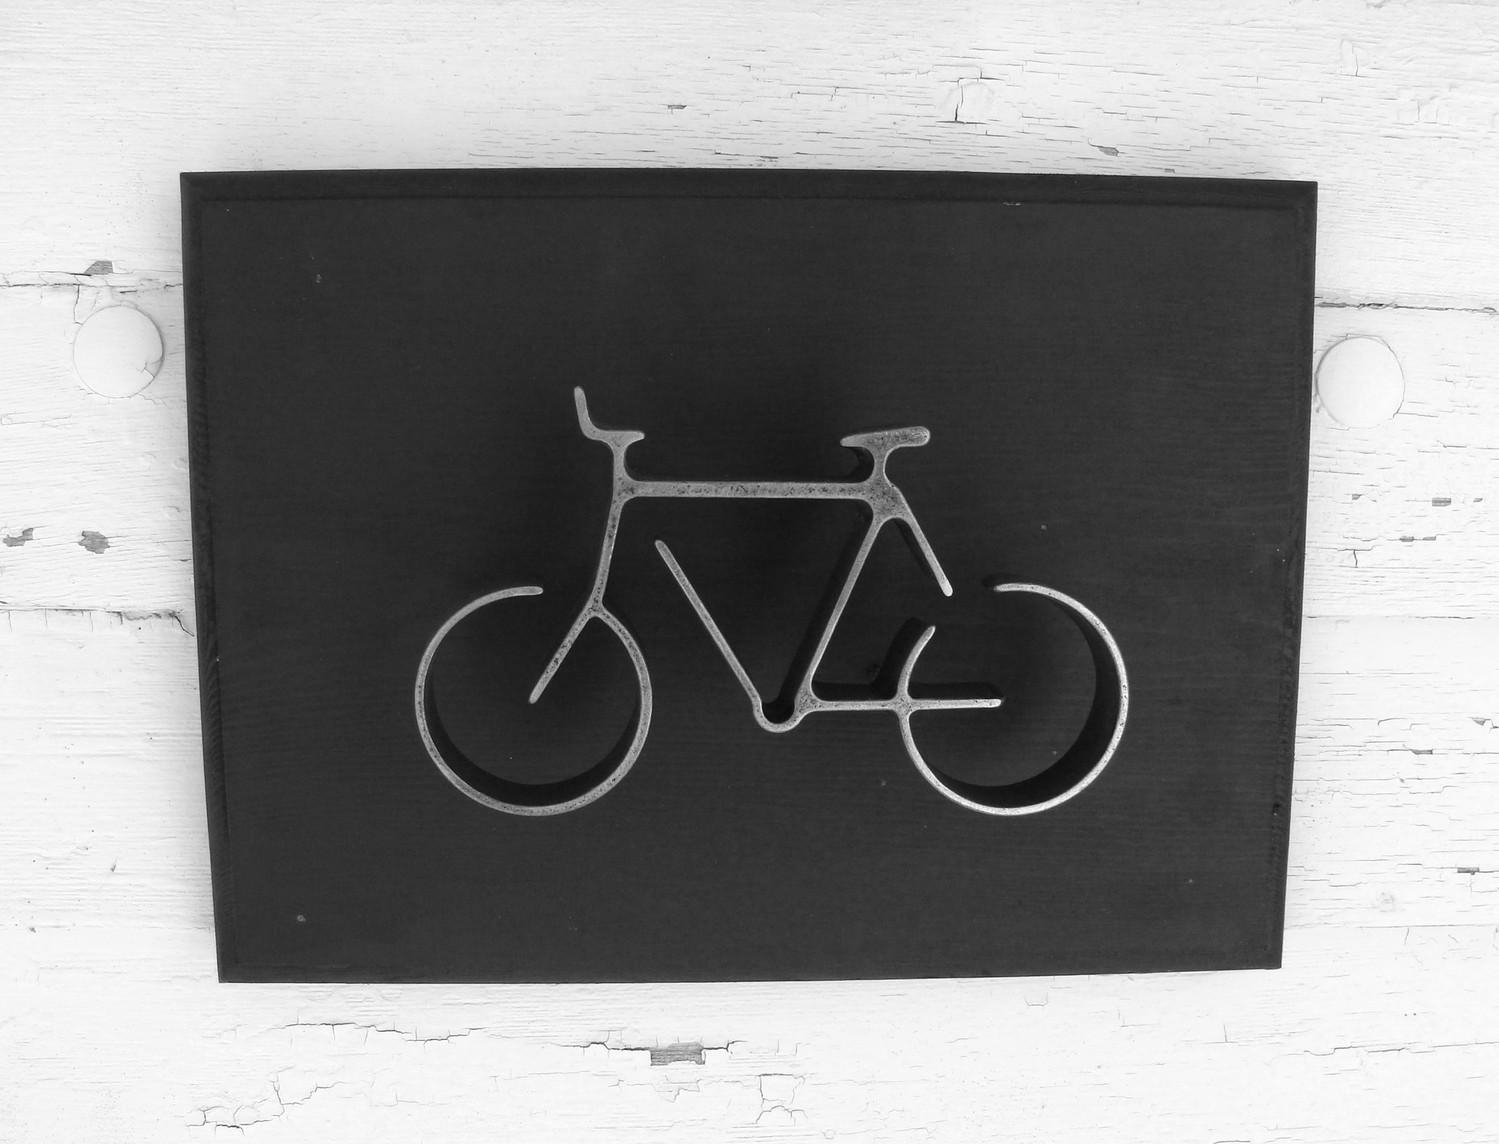 Metal Bike Wall Art Sign Bicycle Wall Hanging Home Or Office Regarding Bicycle Wall Art Decor (View 5 of 20)